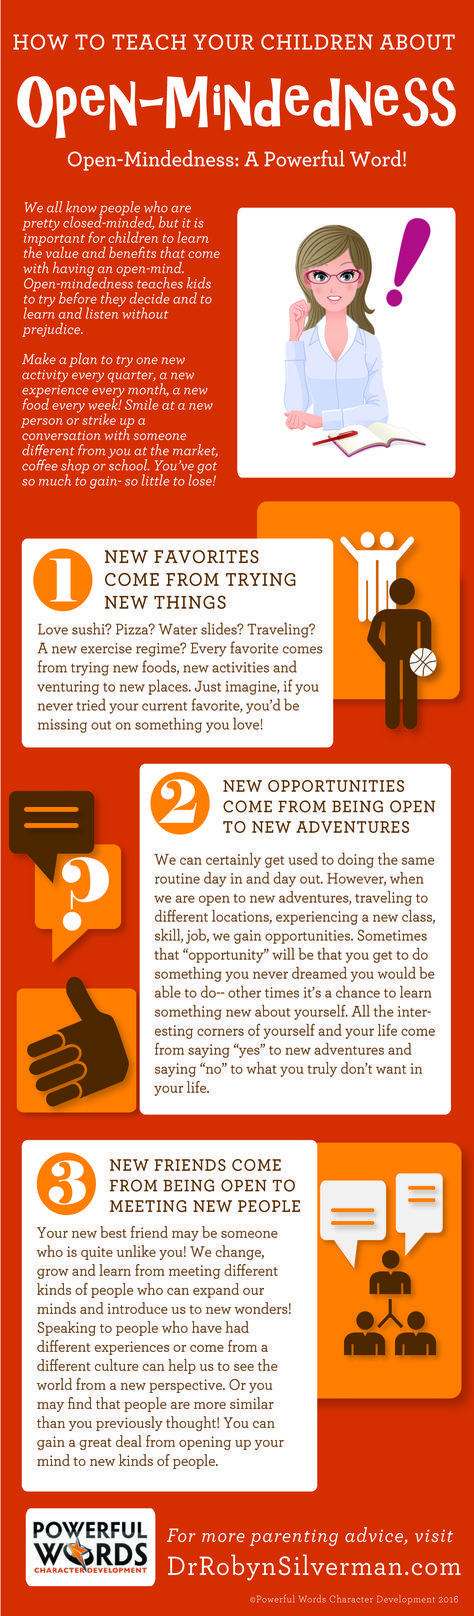 How to Teach Your Child About Open-Mindedness   Powerful Words Character Development   Infographic